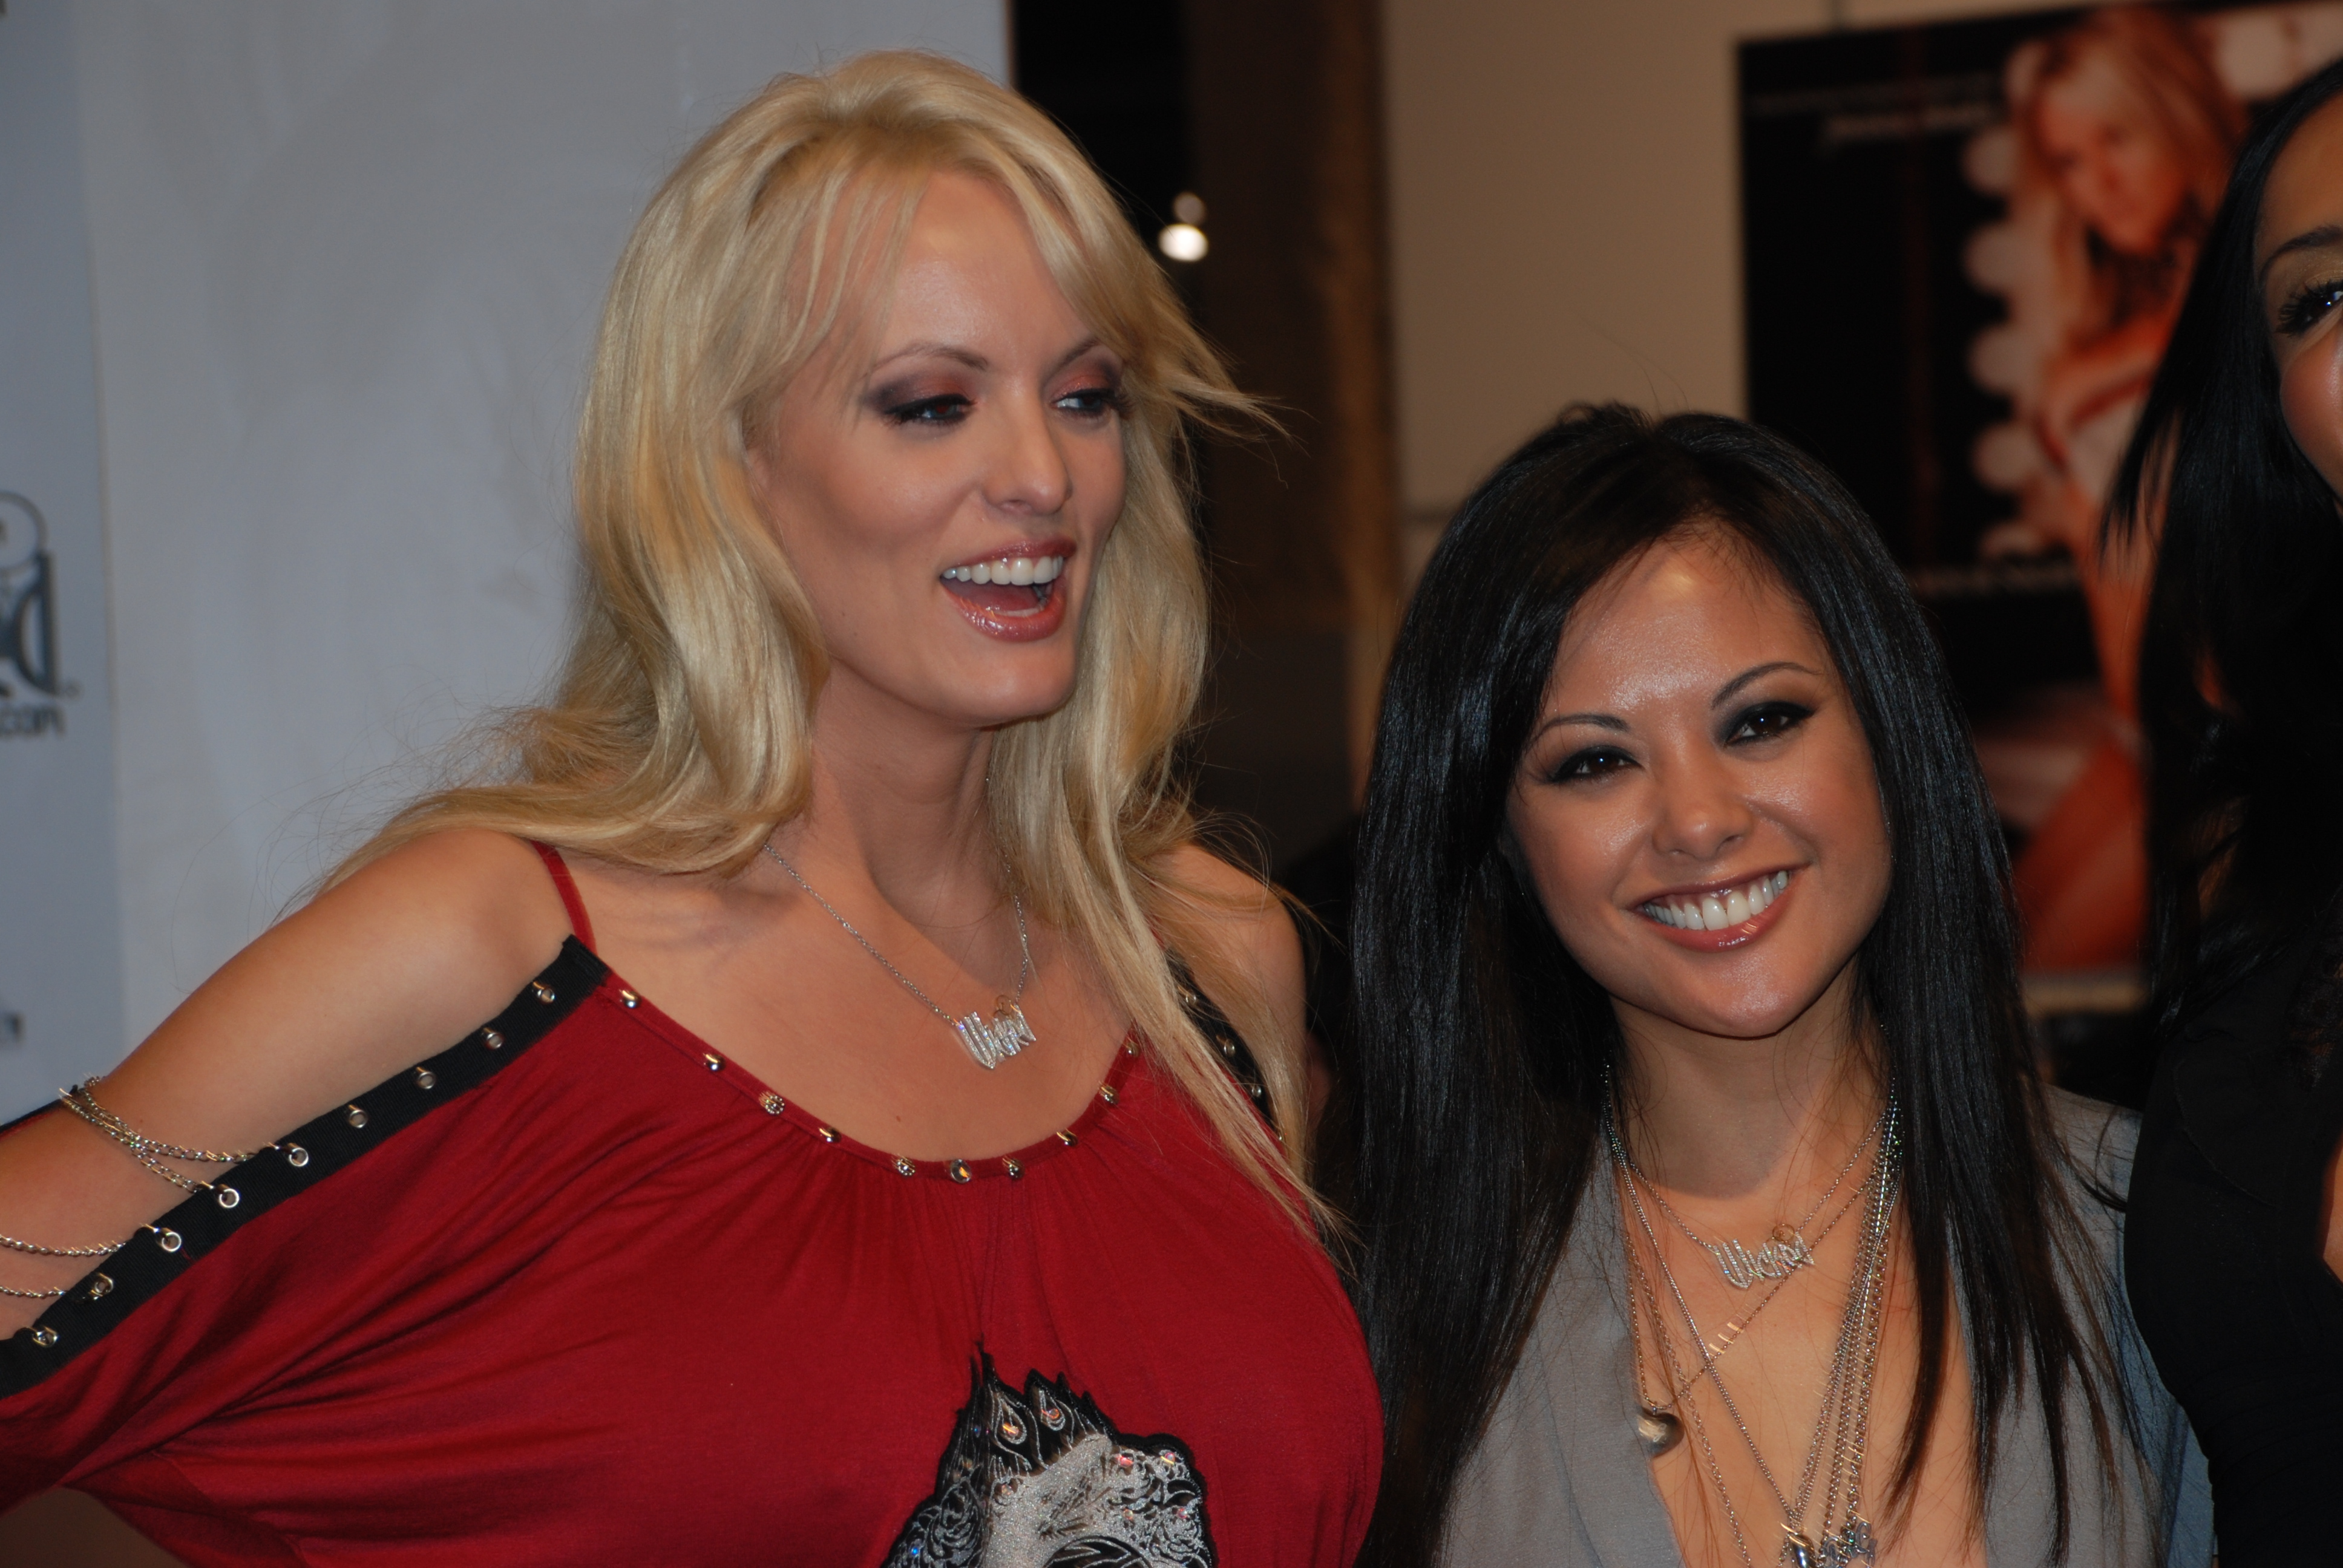 Filewicked Girls At Avn Adult Entertainment Expo 2009 19 Jpg